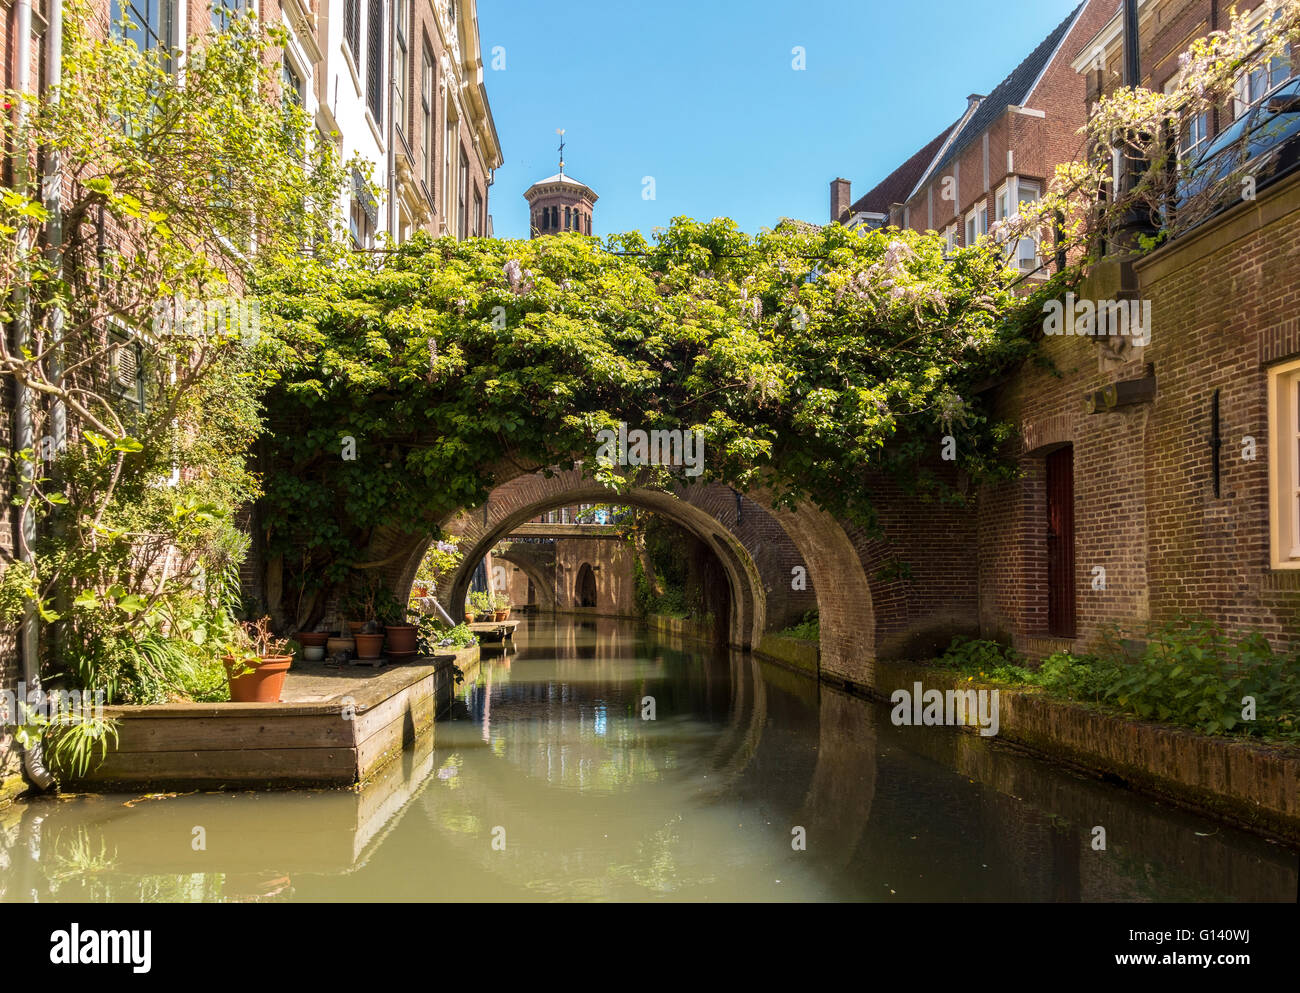 Narrow canal in Utrecht The Netherlands. Kromme Nieuwegracht with private bridges. Stock Photo